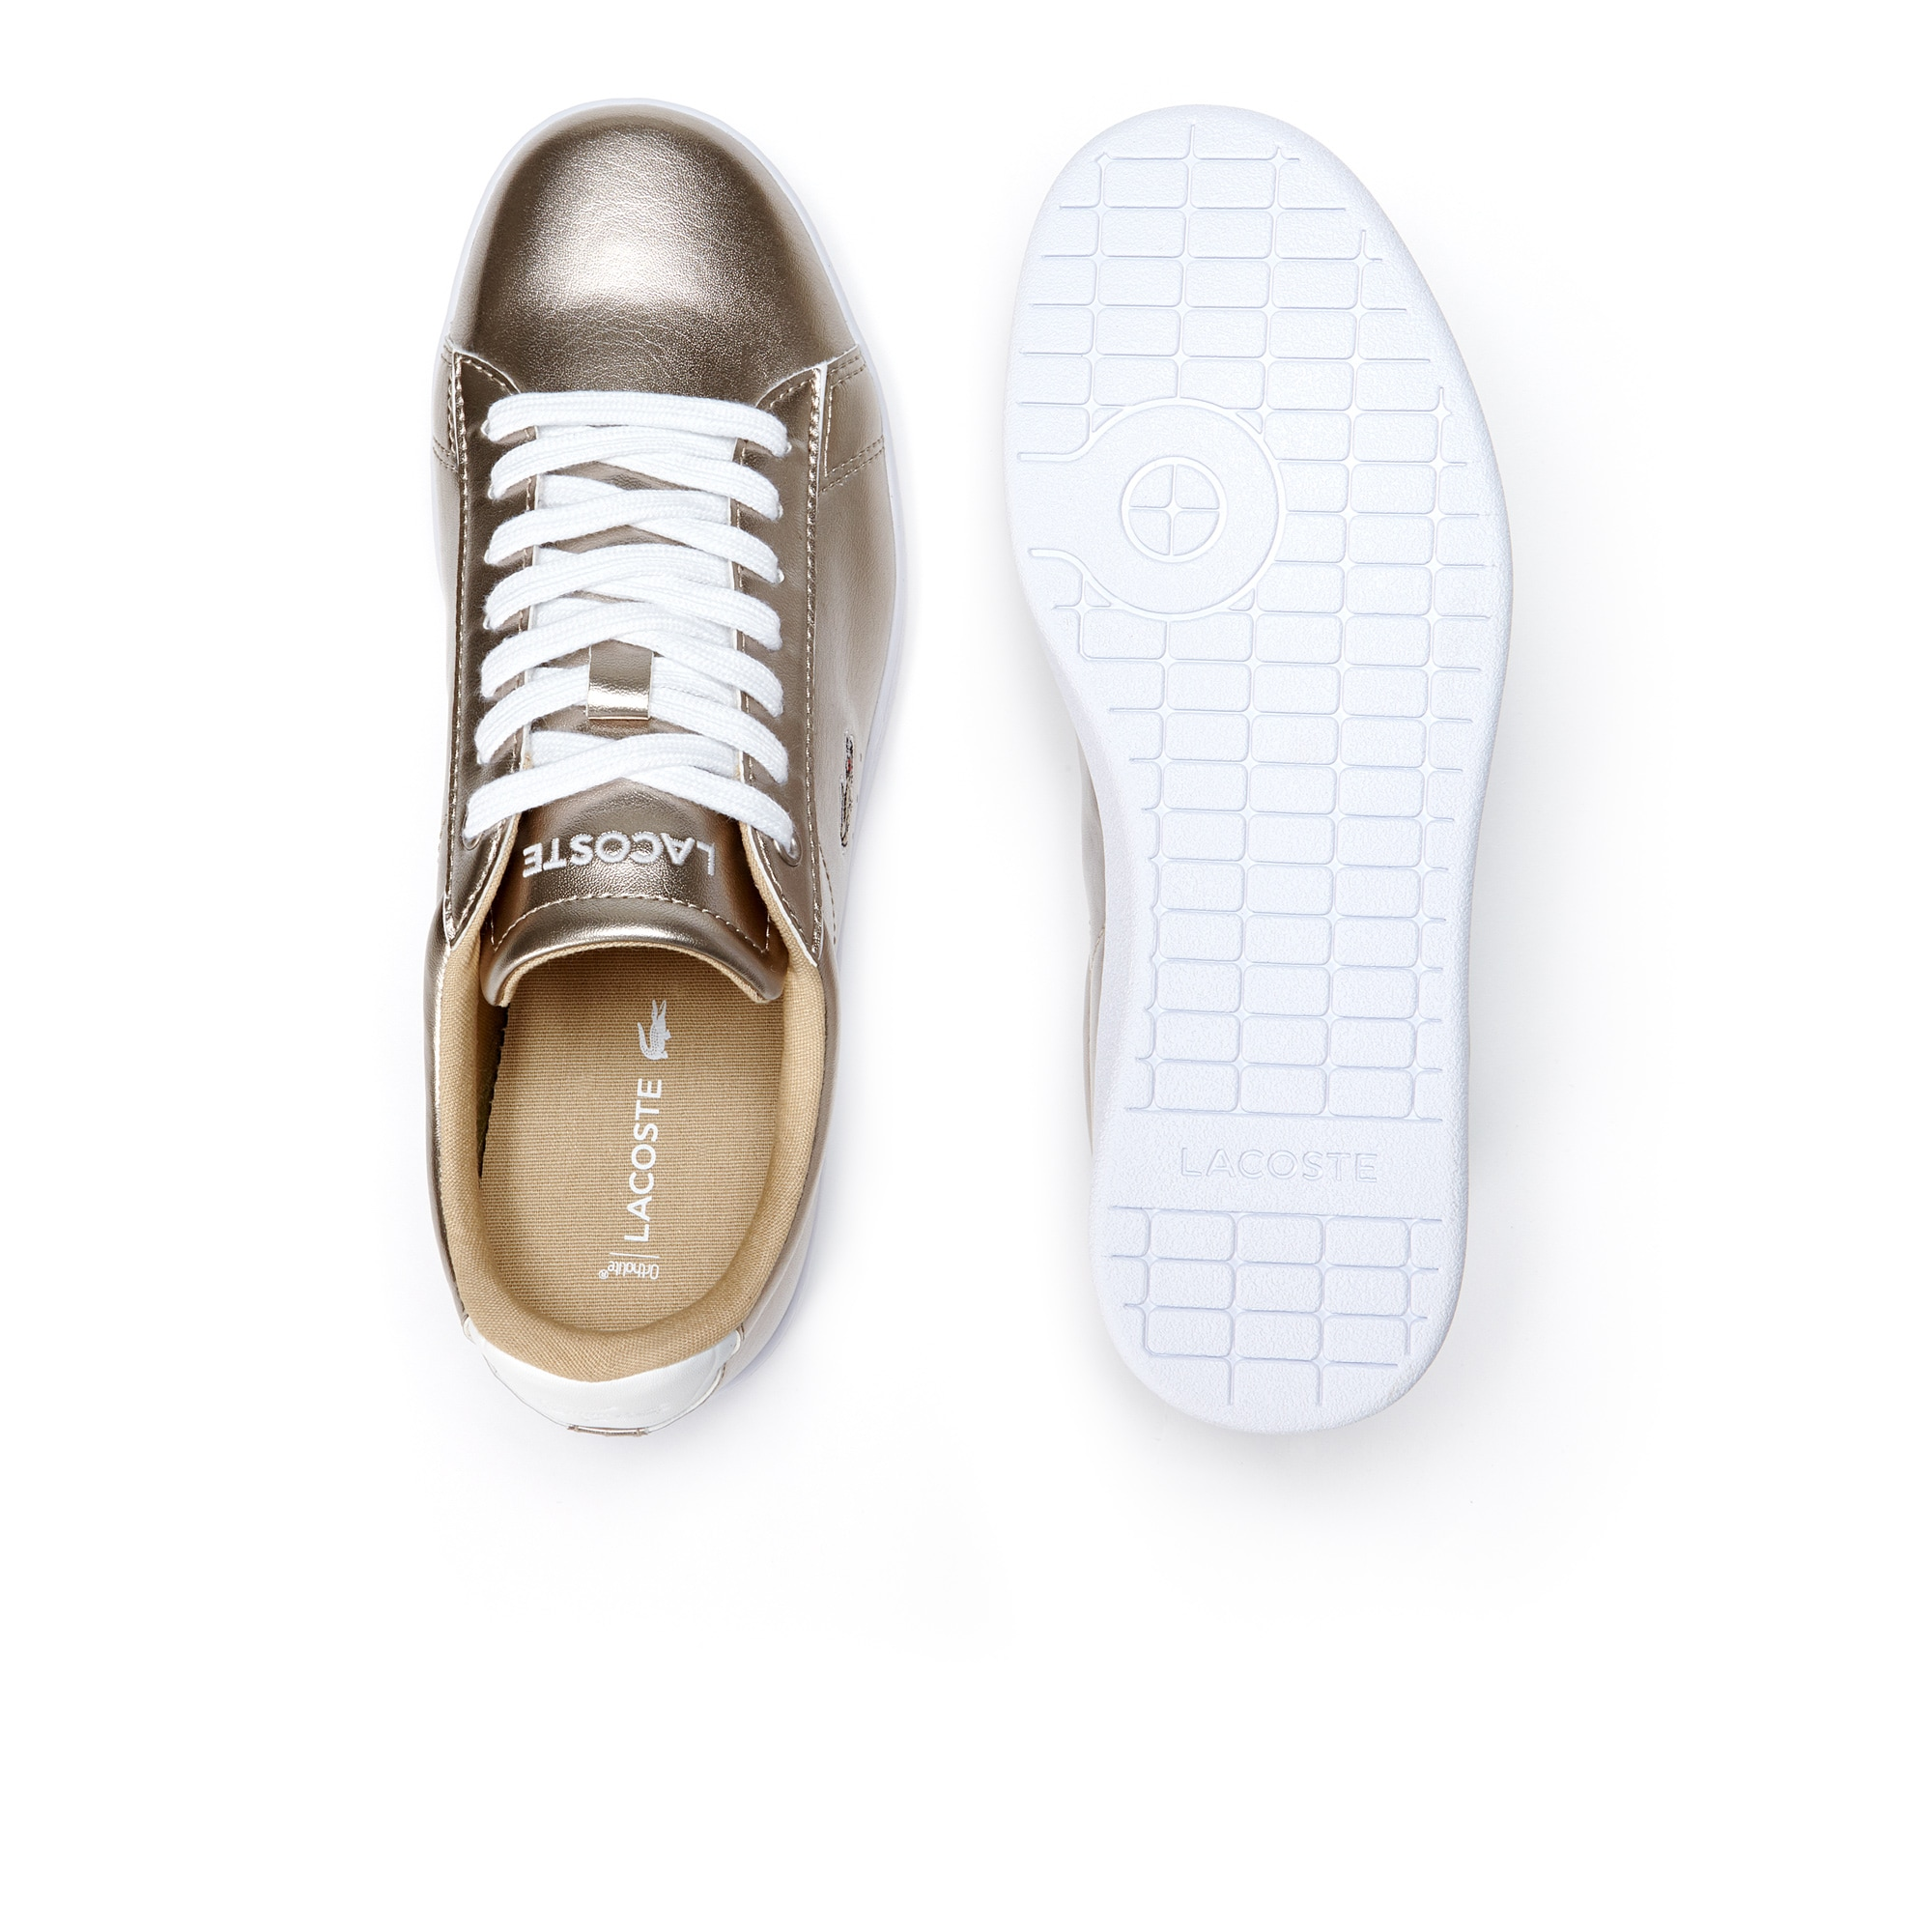 Lacoste WOMEN'S CARNABY EVO LOW-RISE METALLIC LEATHER SNEAKERS S19EiZ9NcE